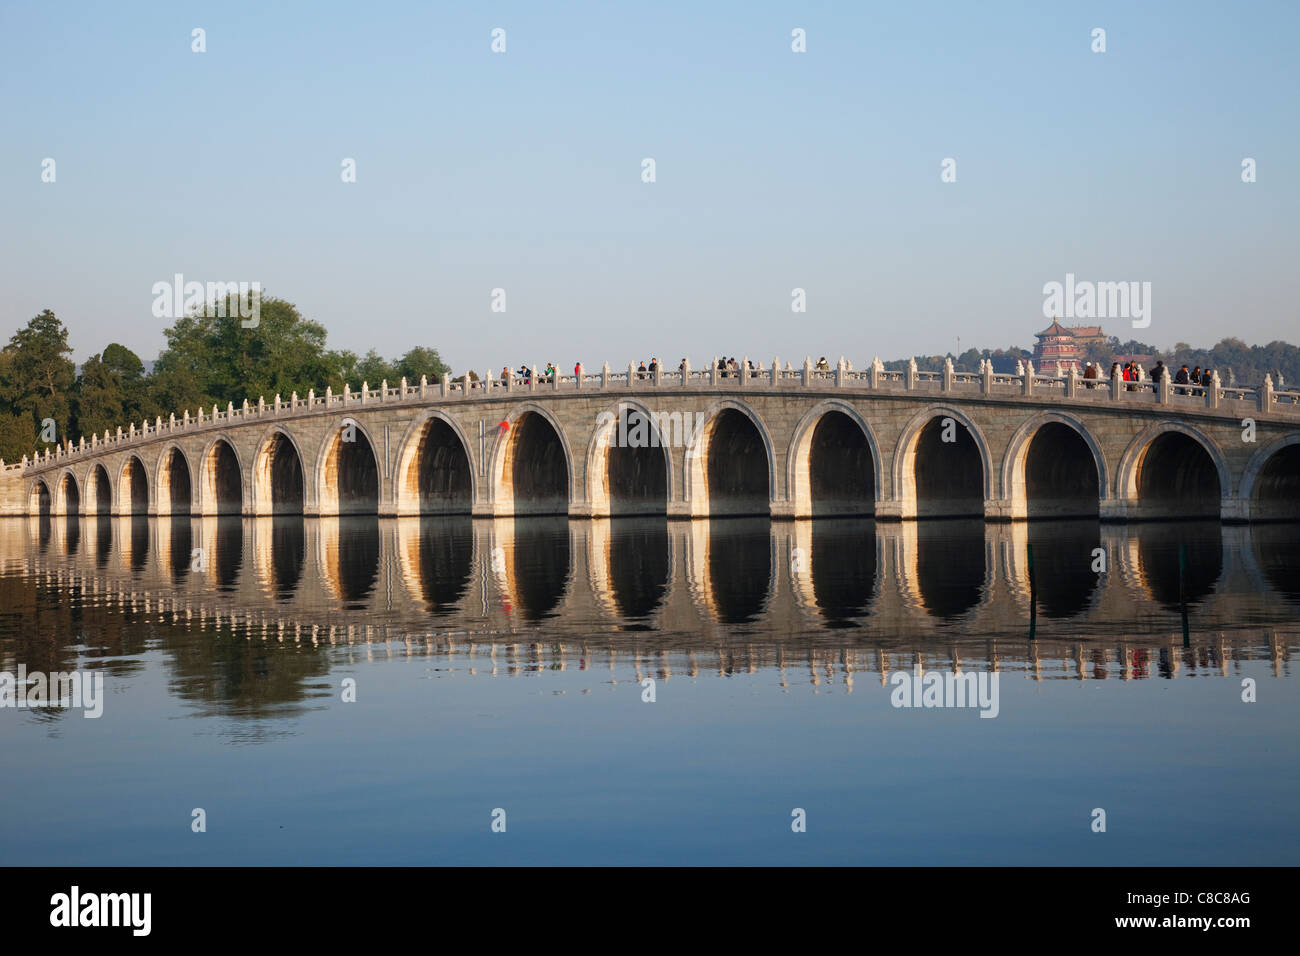 China, Beijing, The Summer Palace, Seventeen Arched Bridge - Stock Image